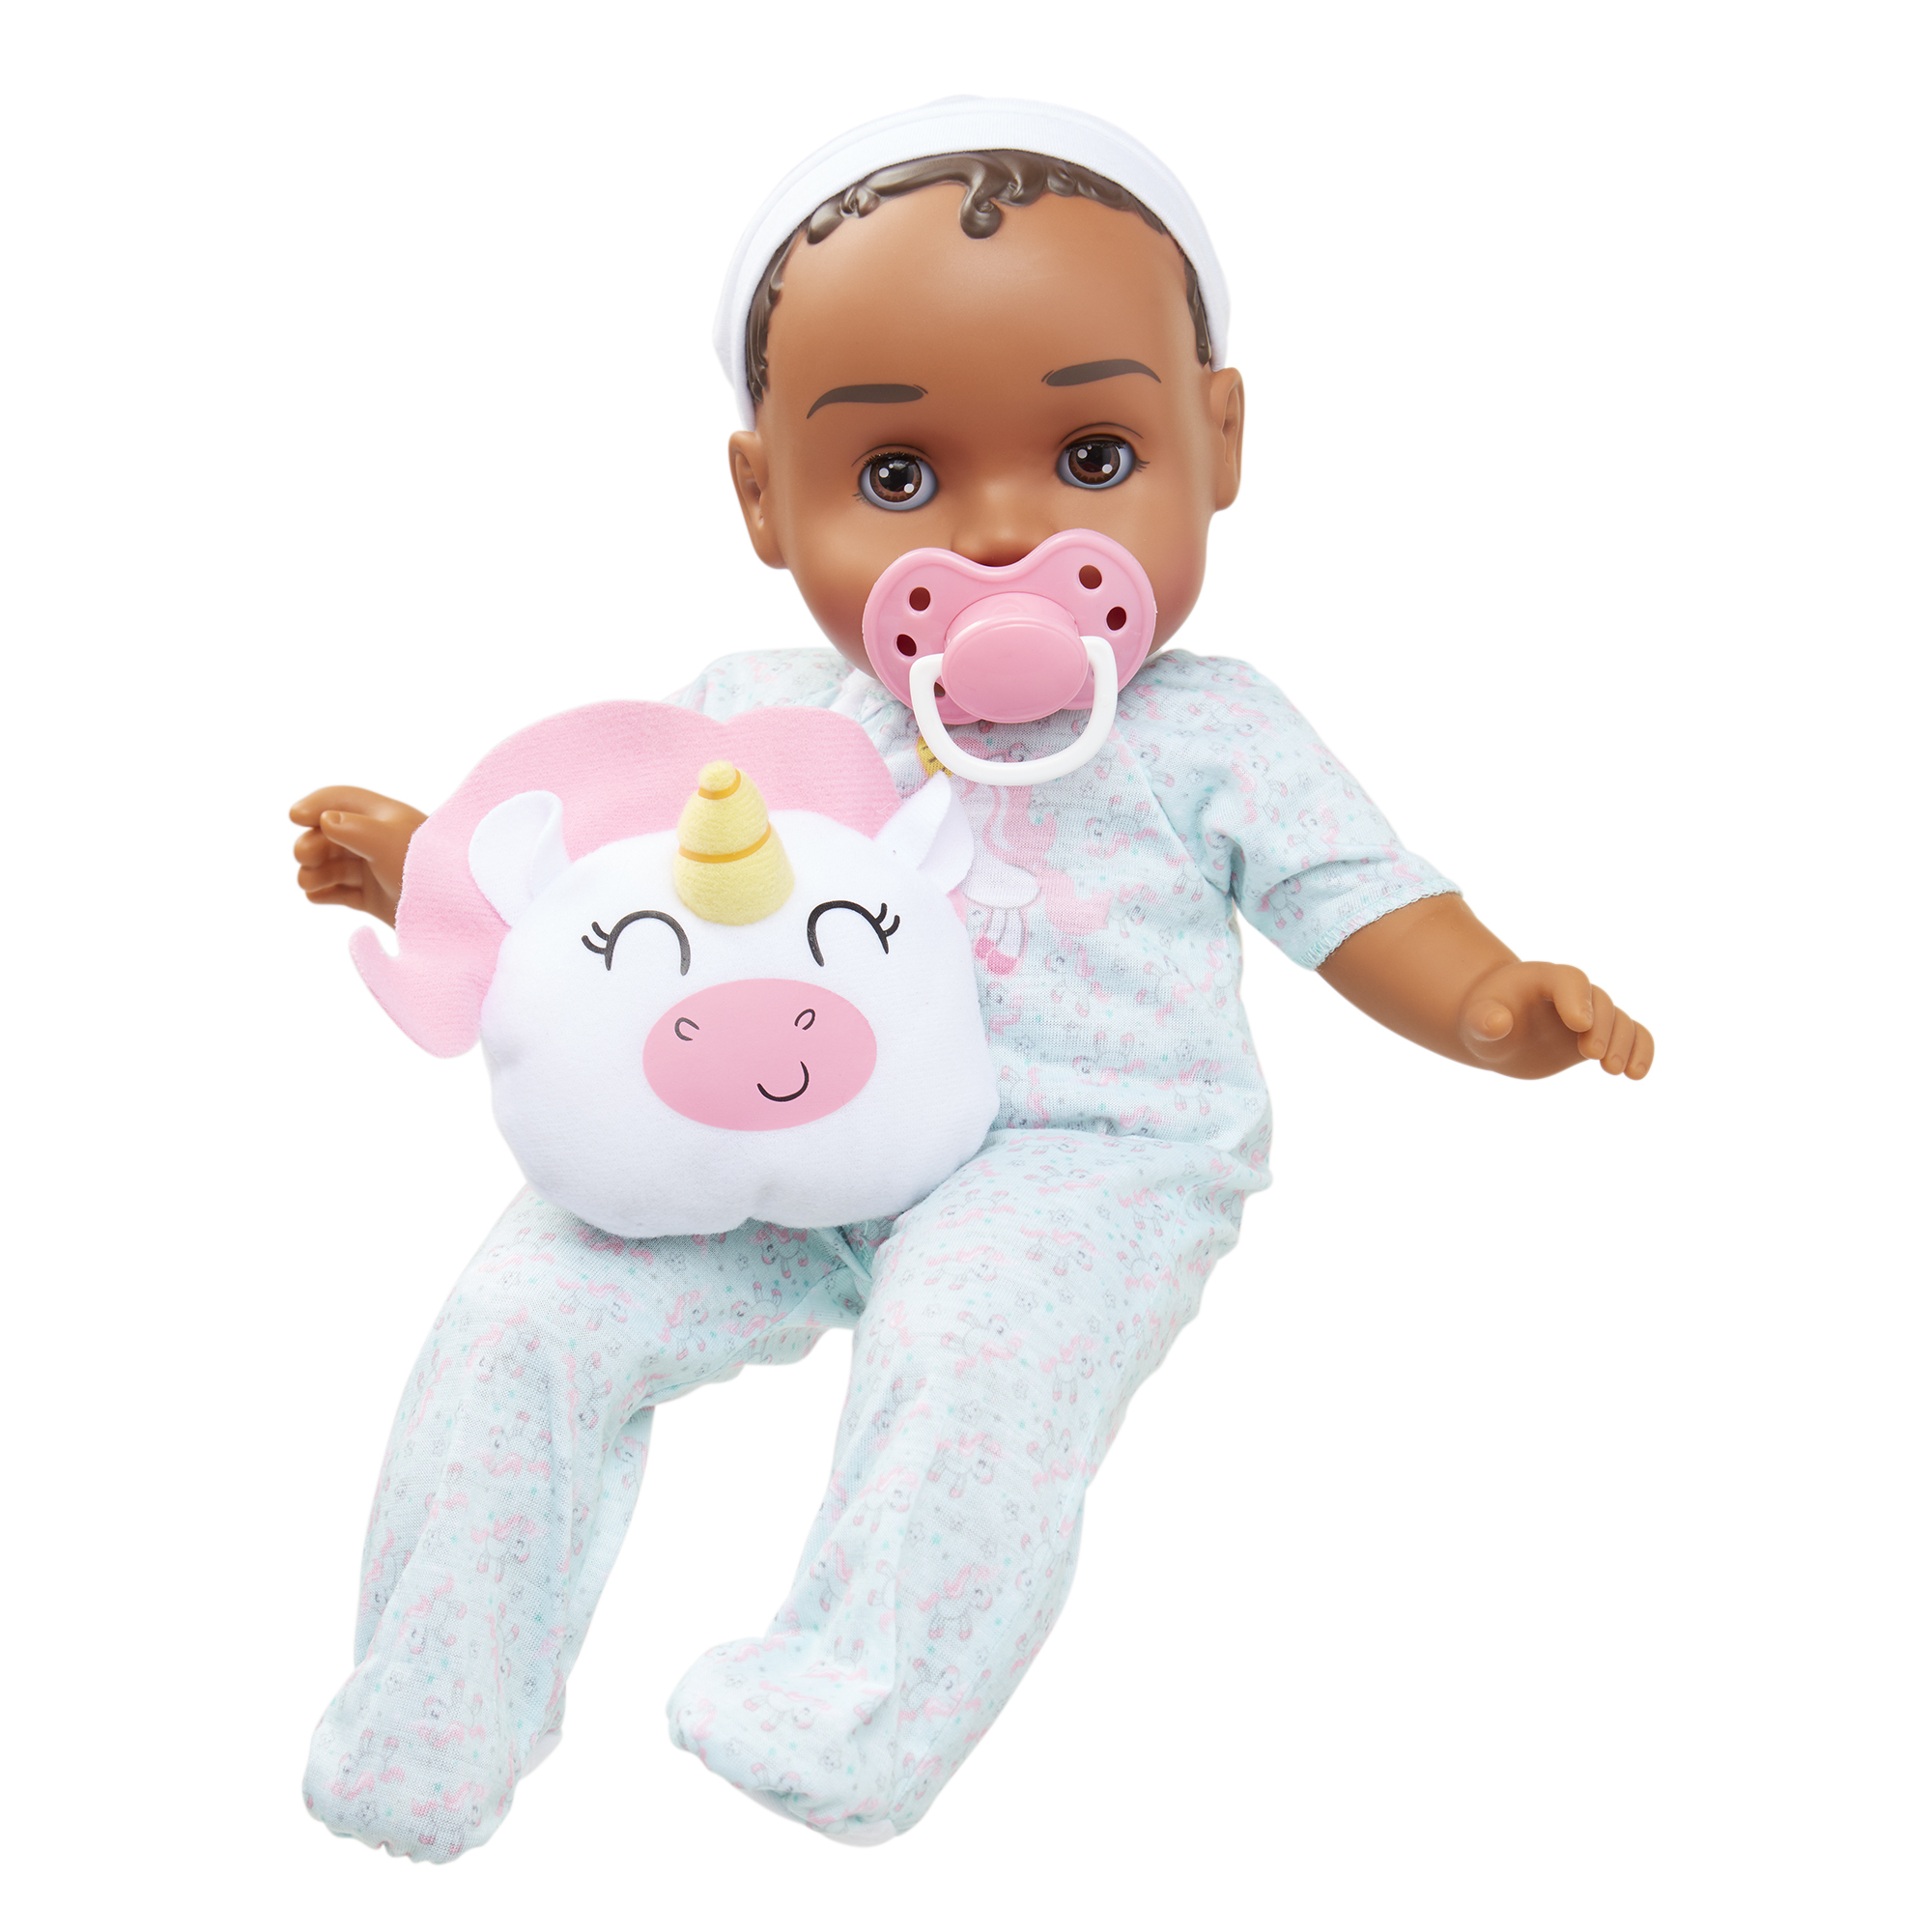 Perfectly Cute Baby My Sleepy Baby 14 inch Girl Doll